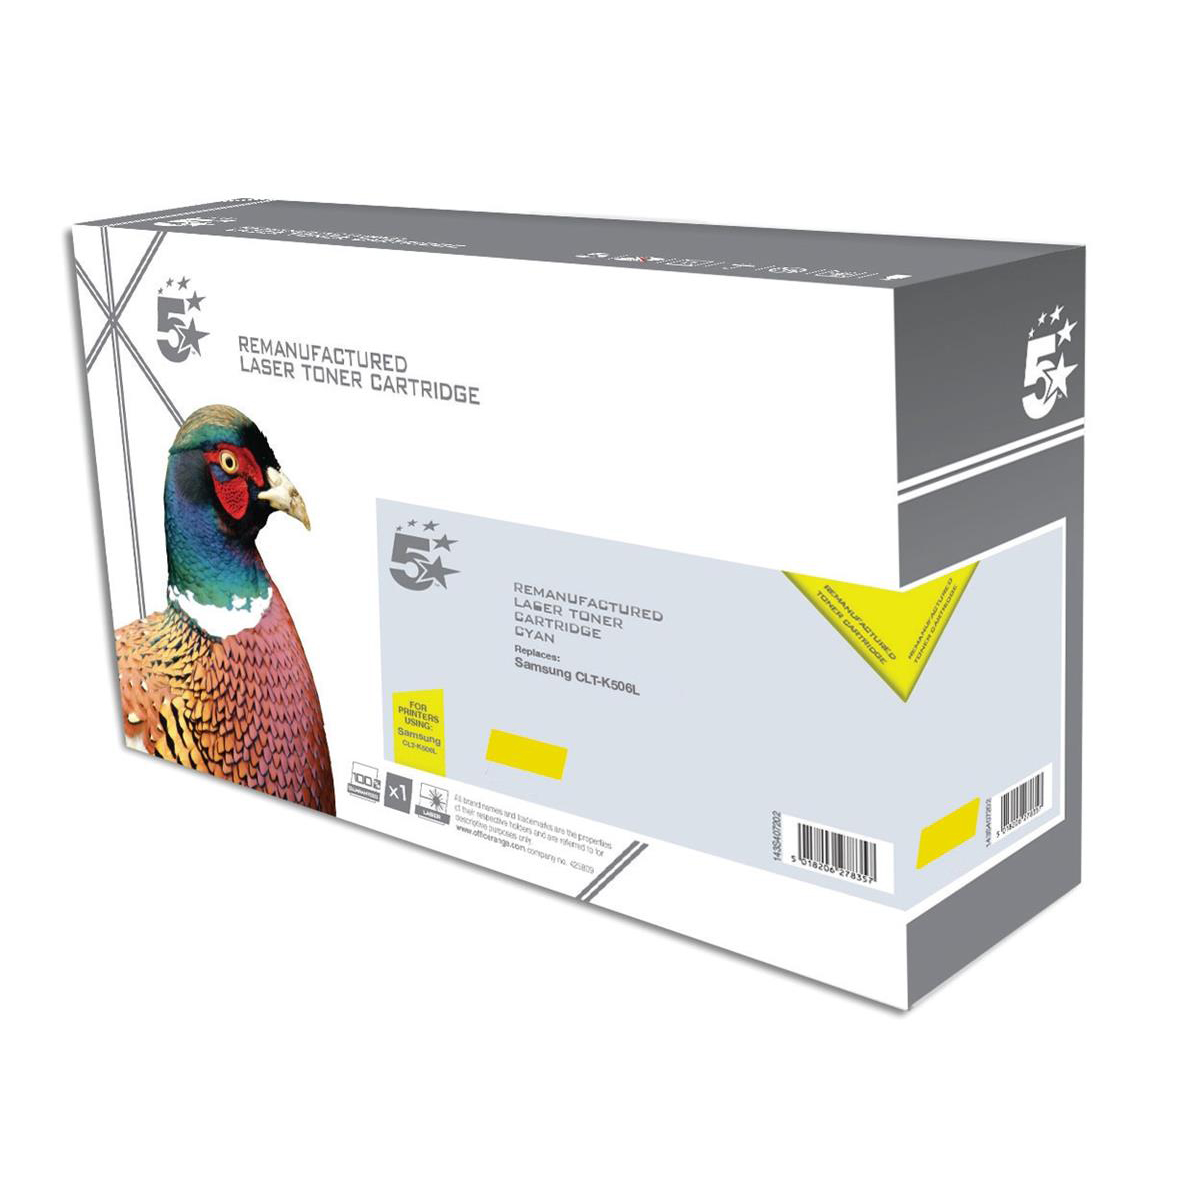 Printer Supplies - Laser Cartridges